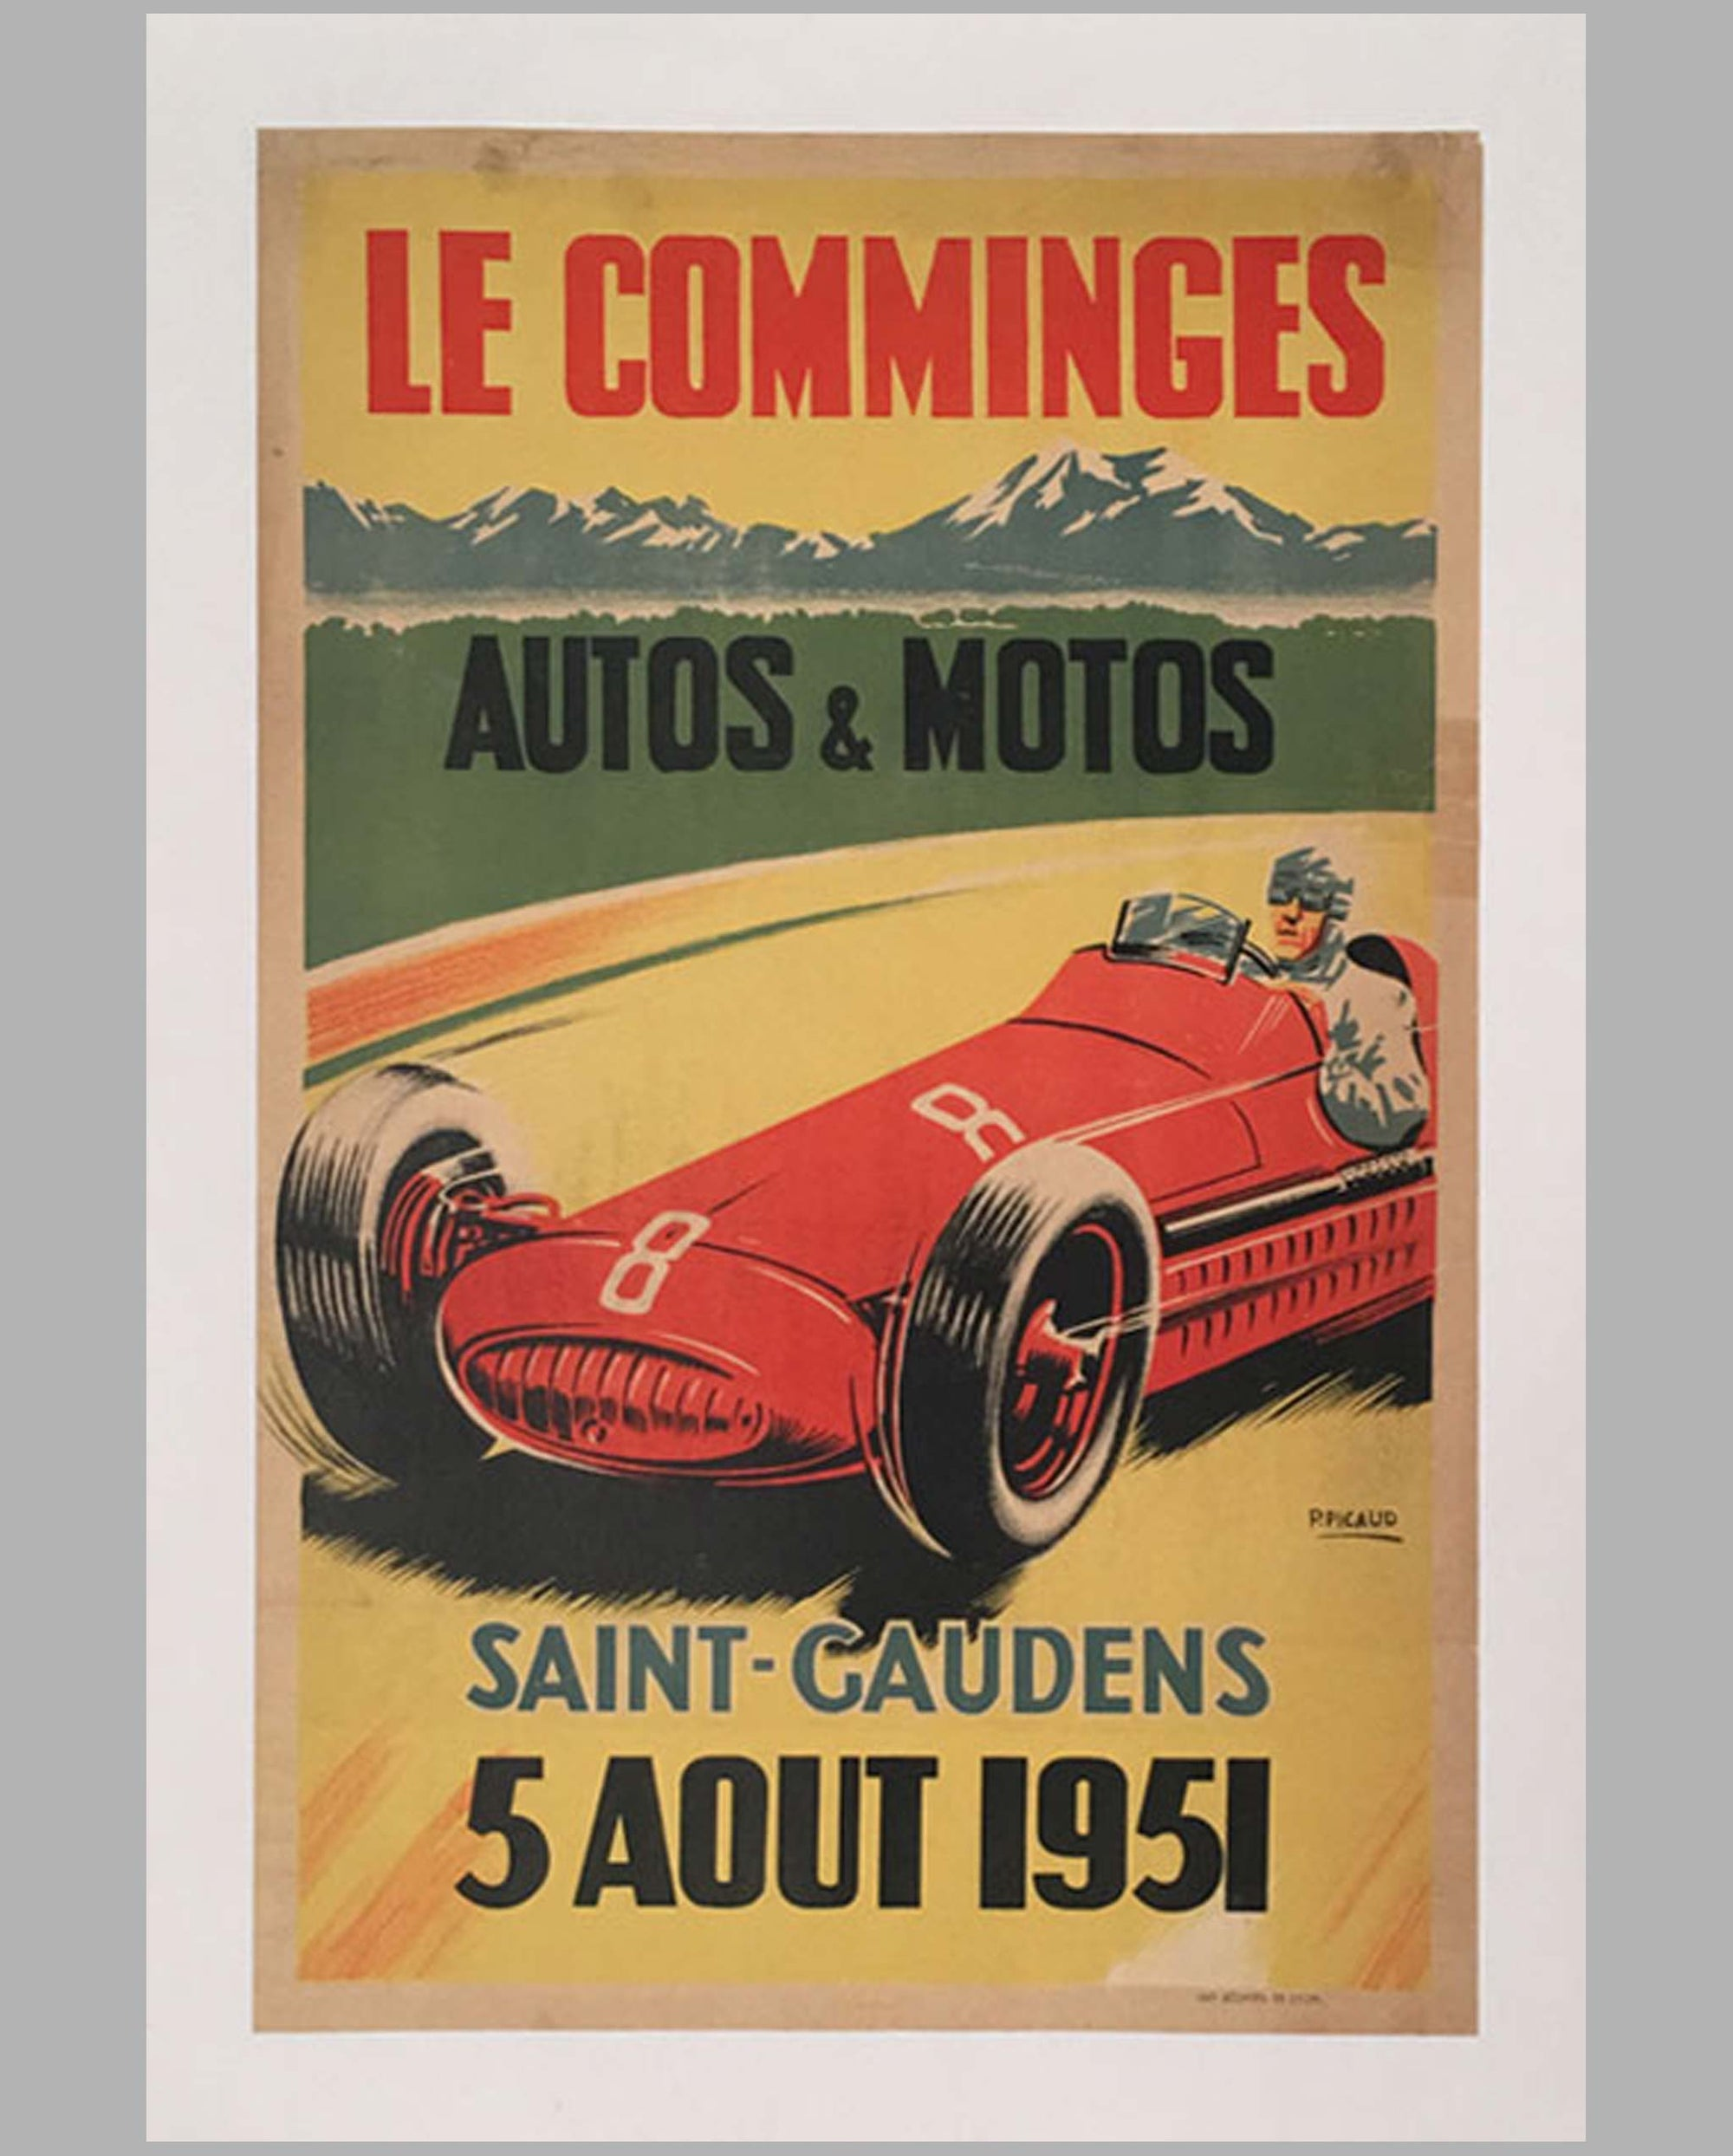 1951 Le Comminges original racing poster by P. Picaud